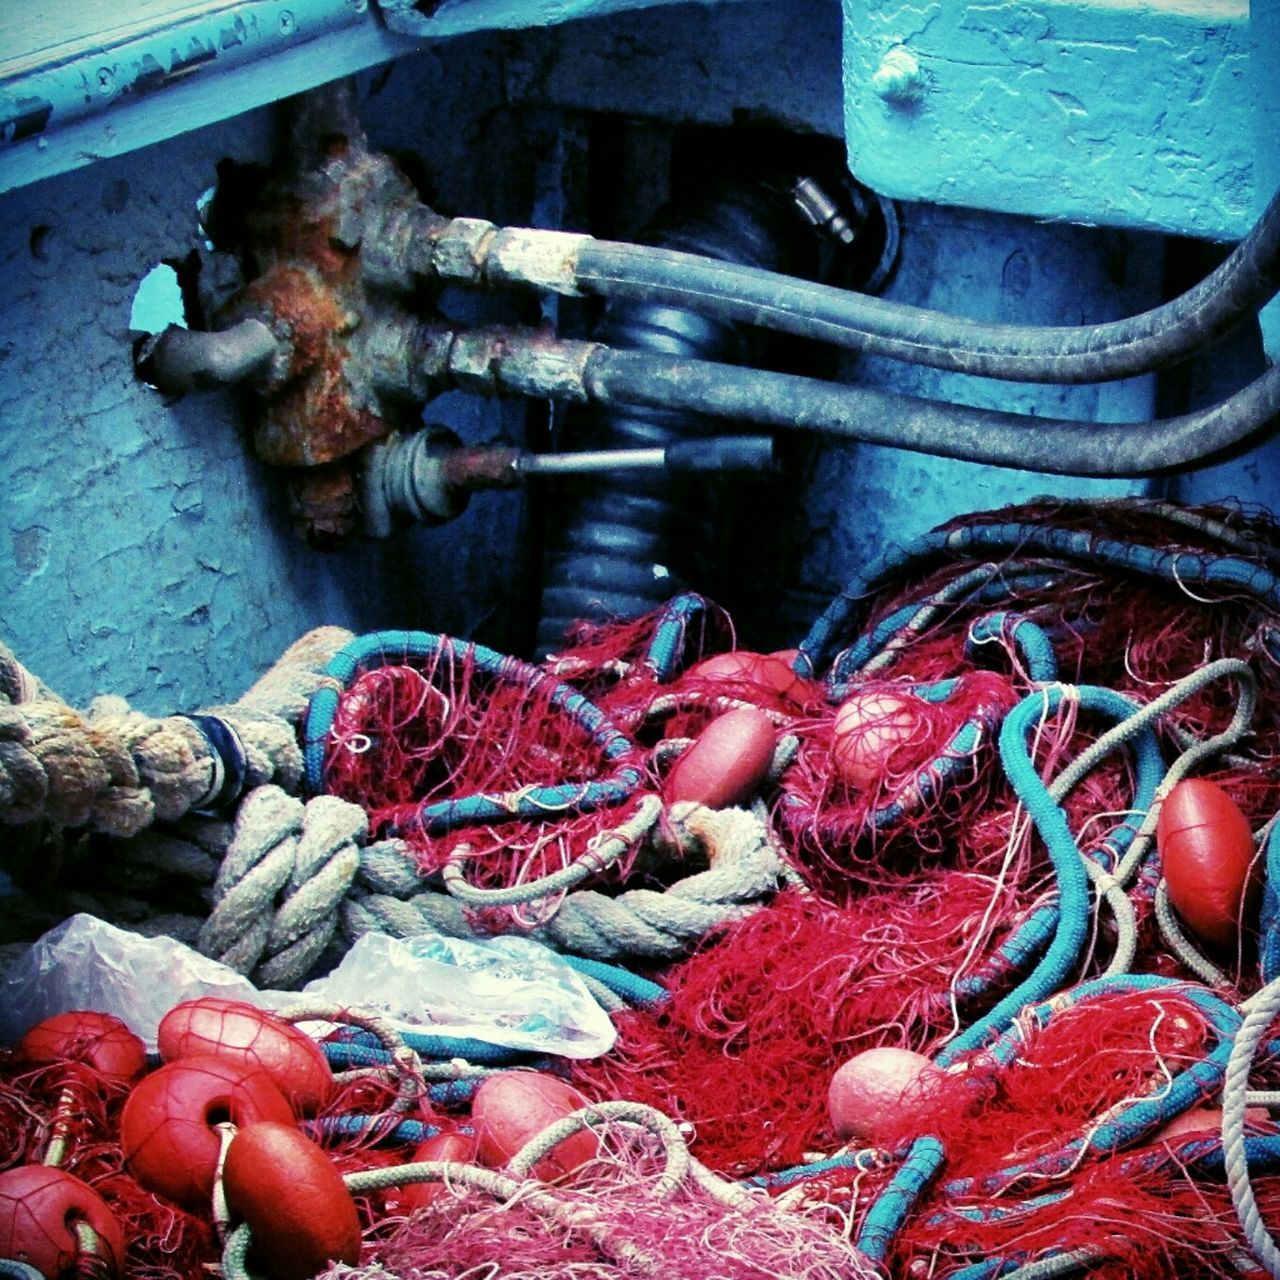 View of fishing nets in boat